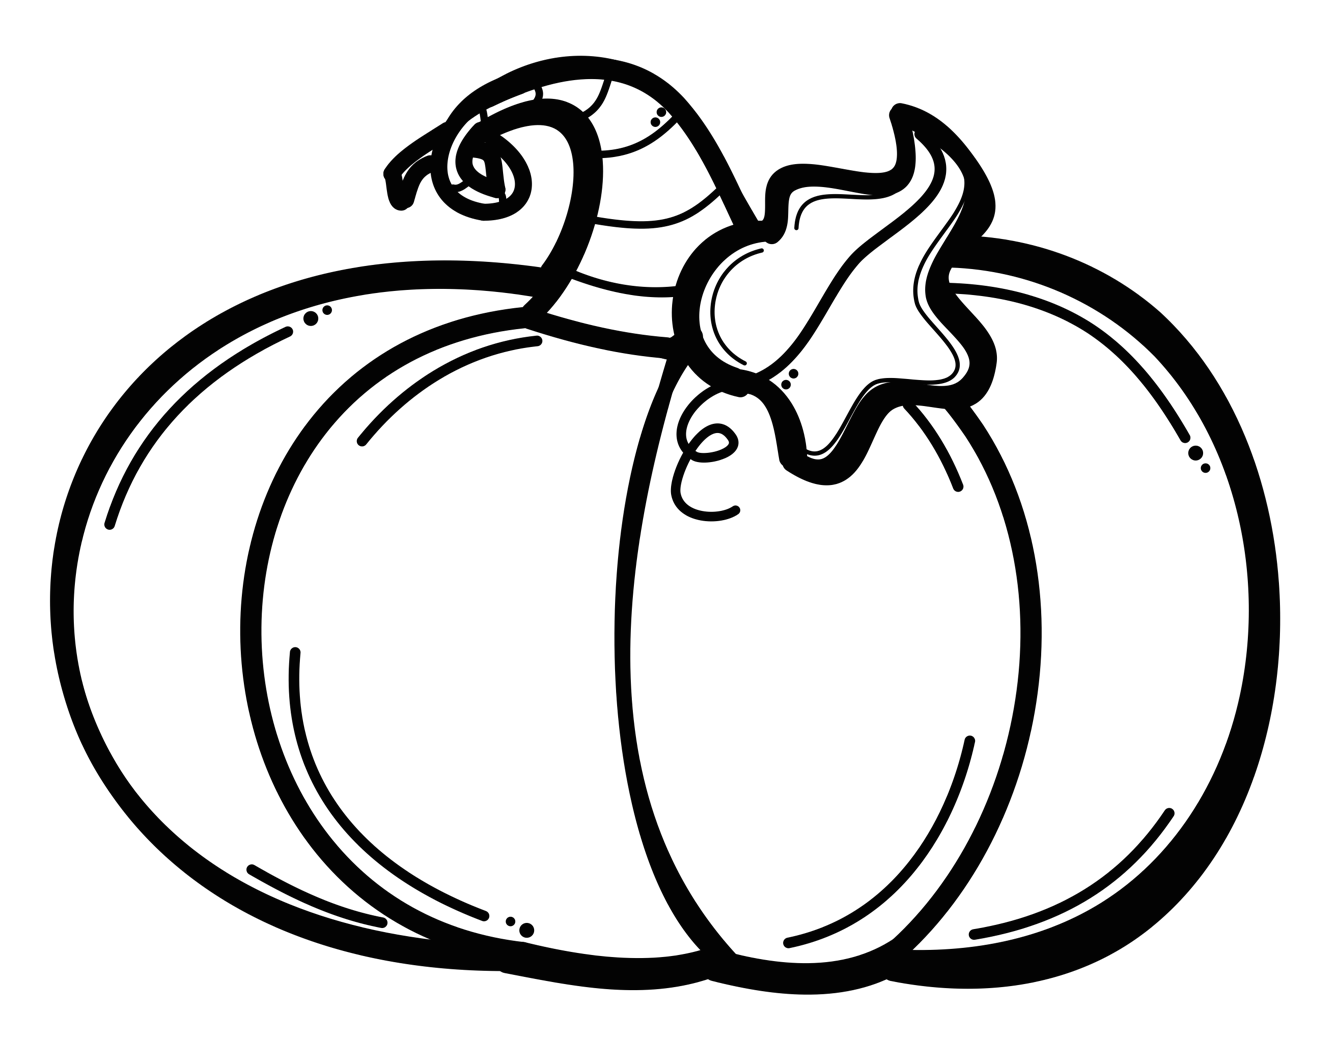 Pumpkin clipart black and white outline picture freeuse library 28+ Collection of Pumpkin Clipart Black And White Png | High quality ... picture freeuse library